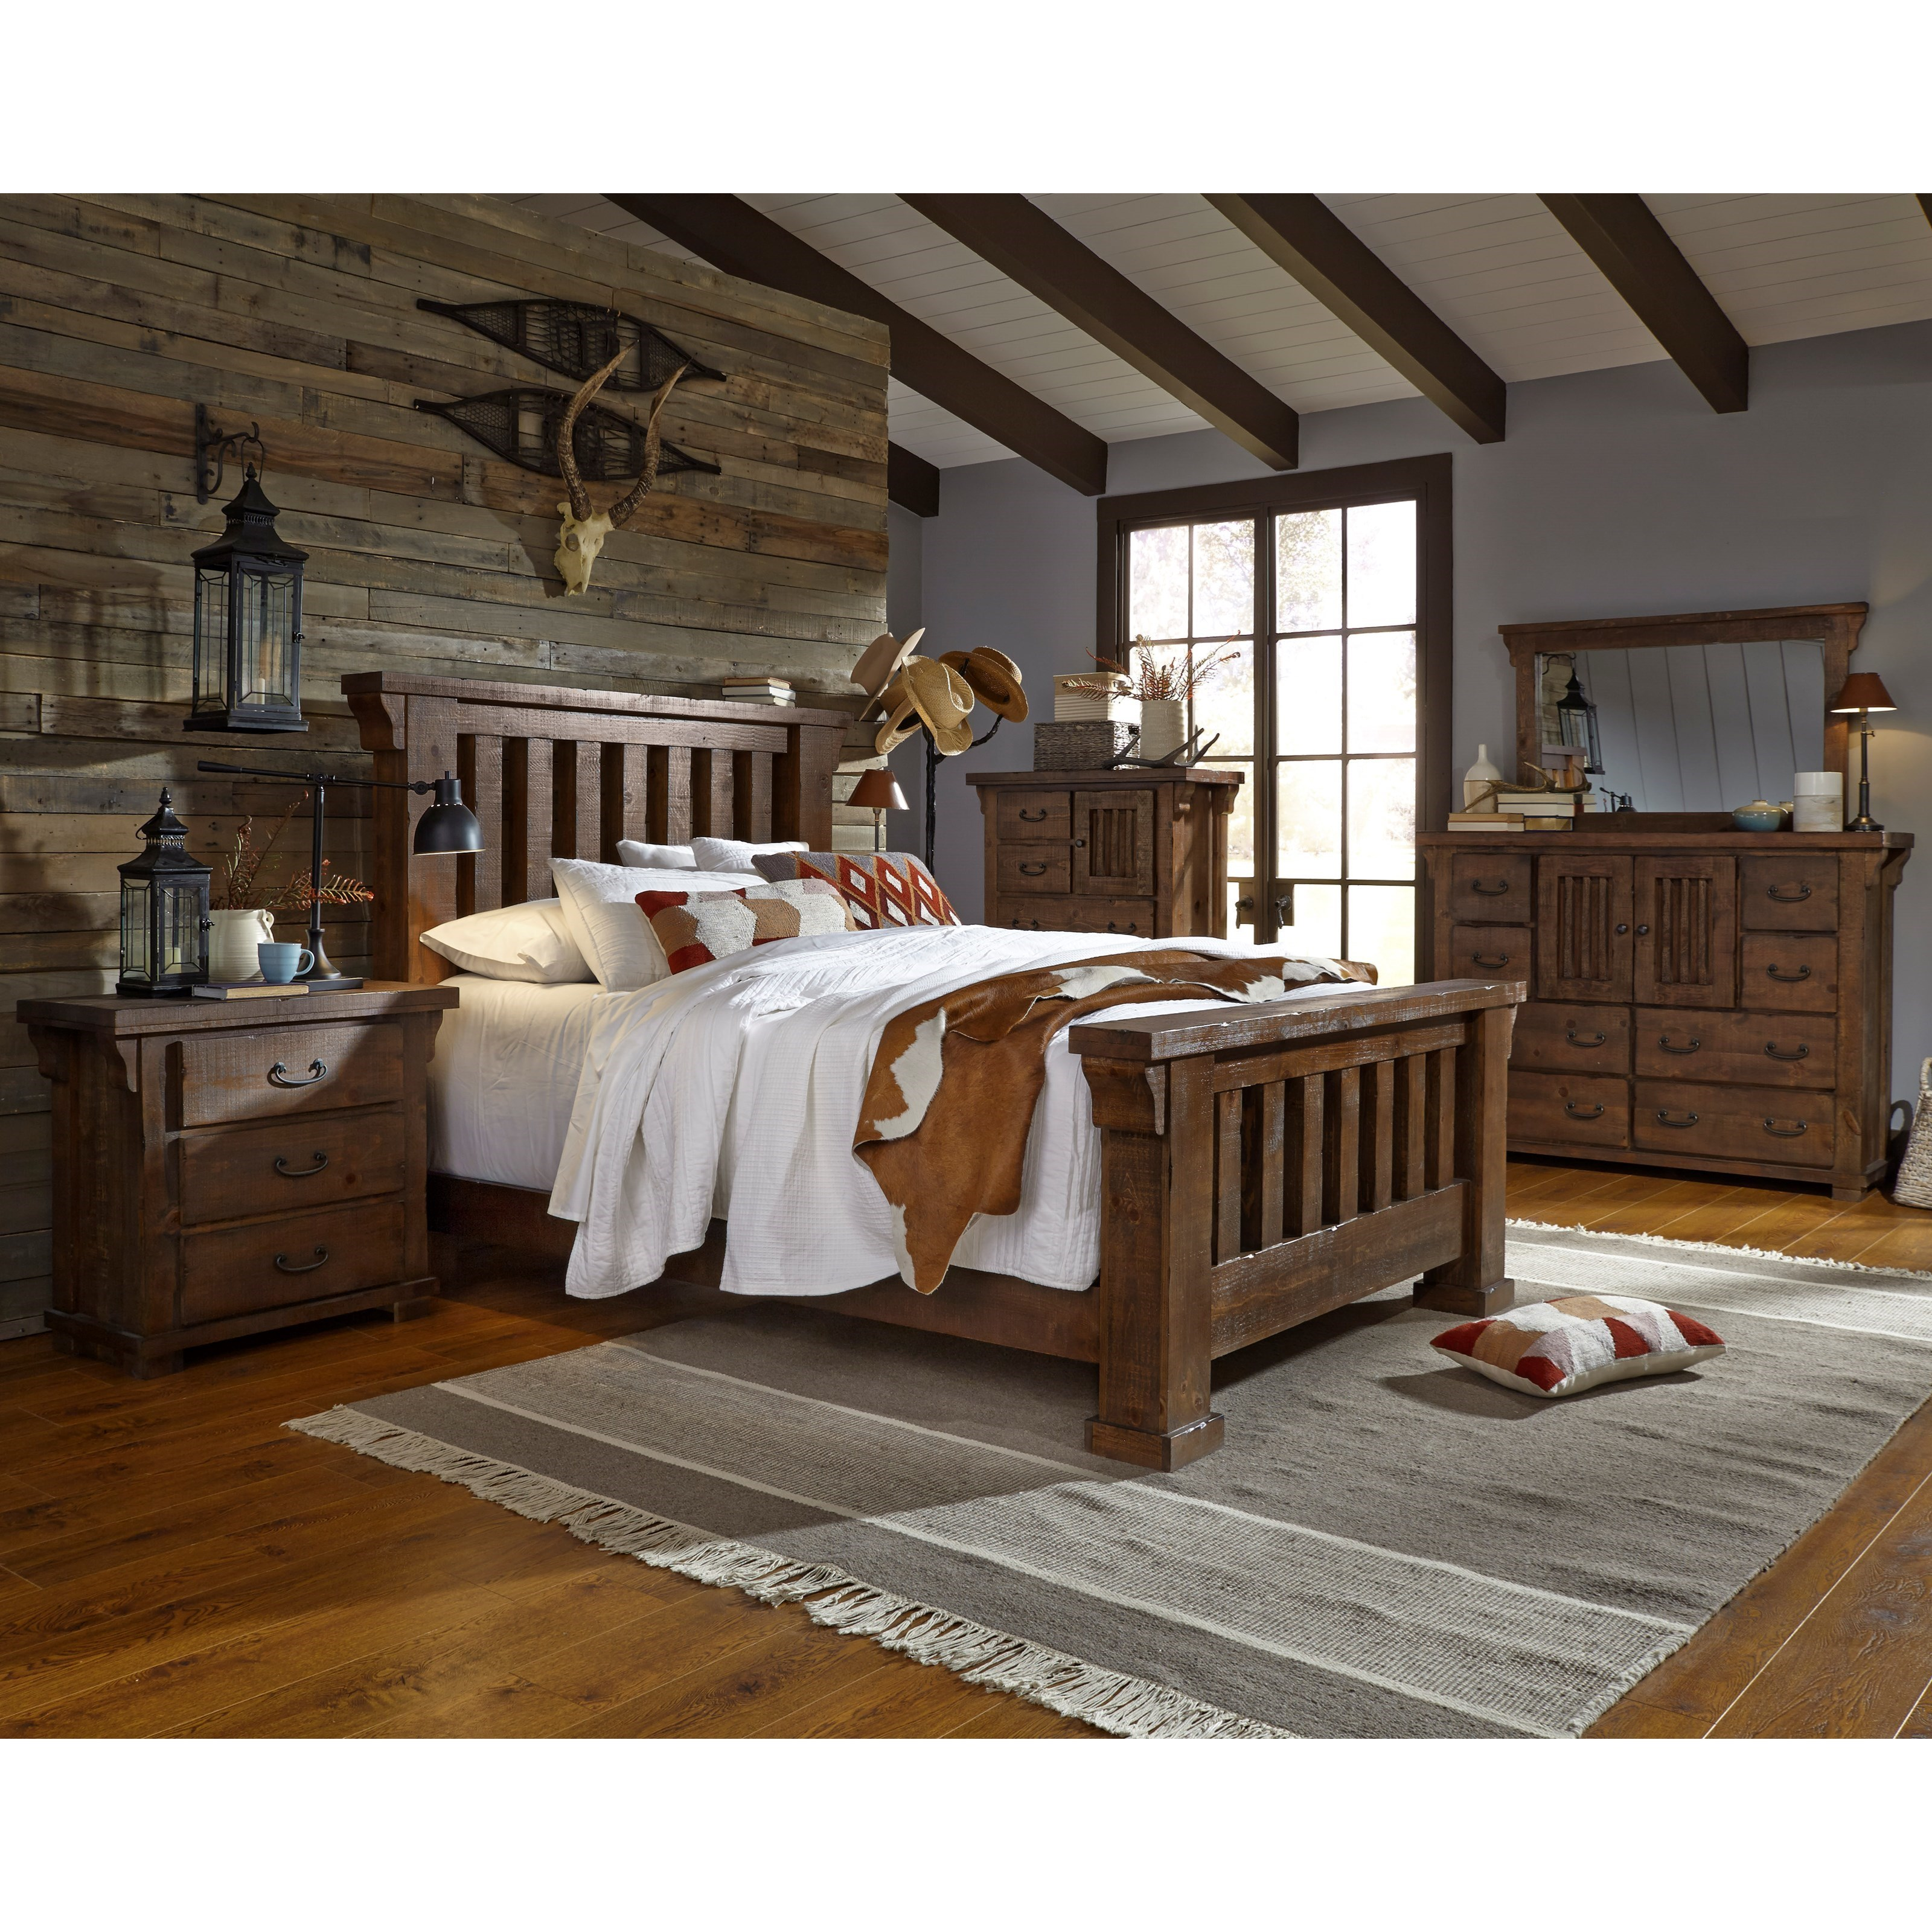 Progressive furniture forrester queen bedroom group for Bedroom furniture groups